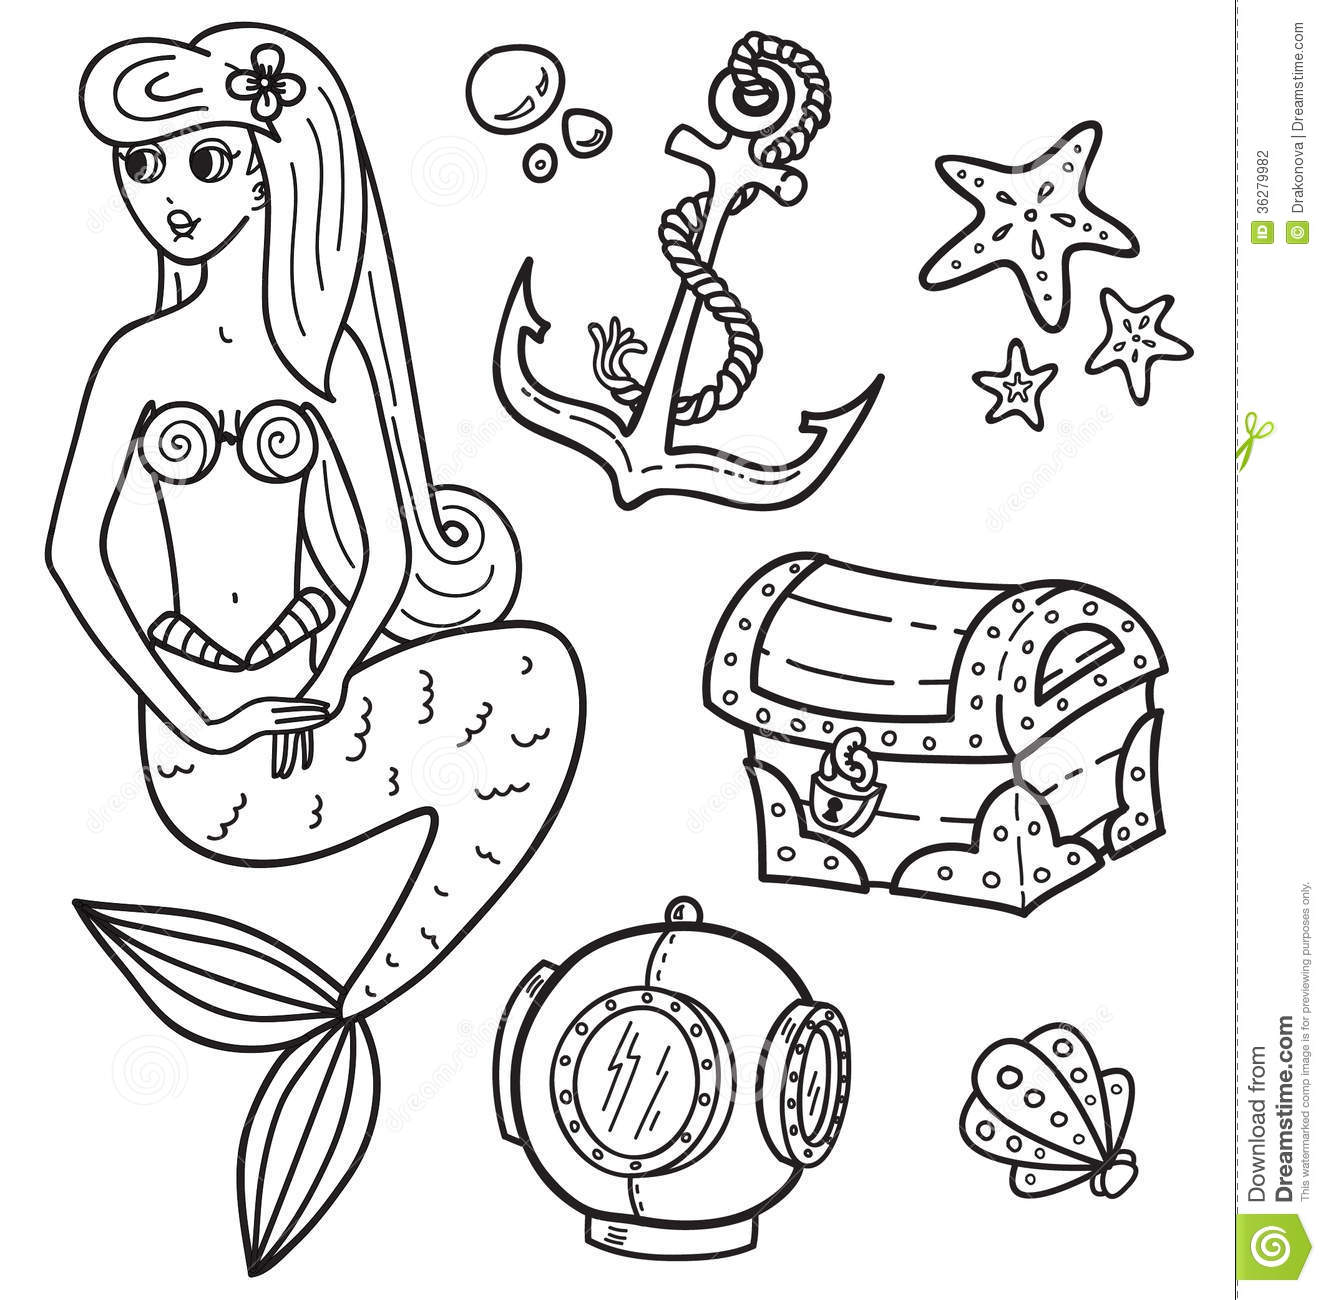 underwater sea coloring pages - mermaid and other underwater objects stock vector